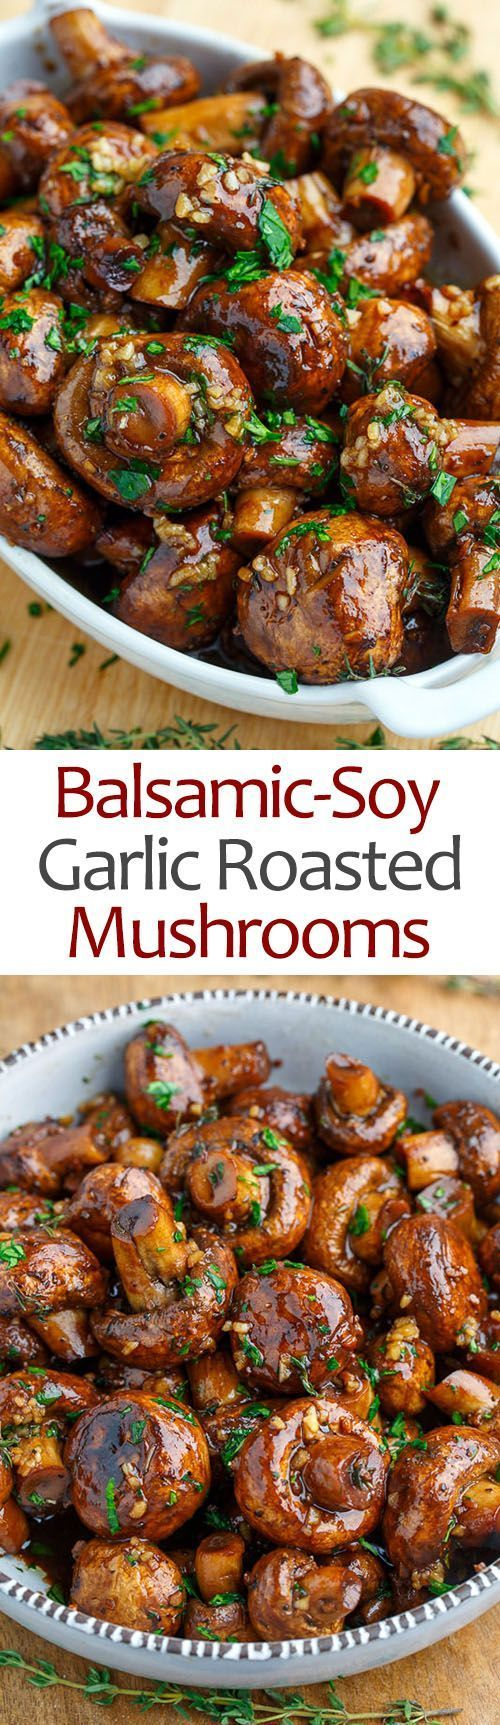 Simple and tasty mushrooms roasted in a balsamic-soy and garlic sauce!